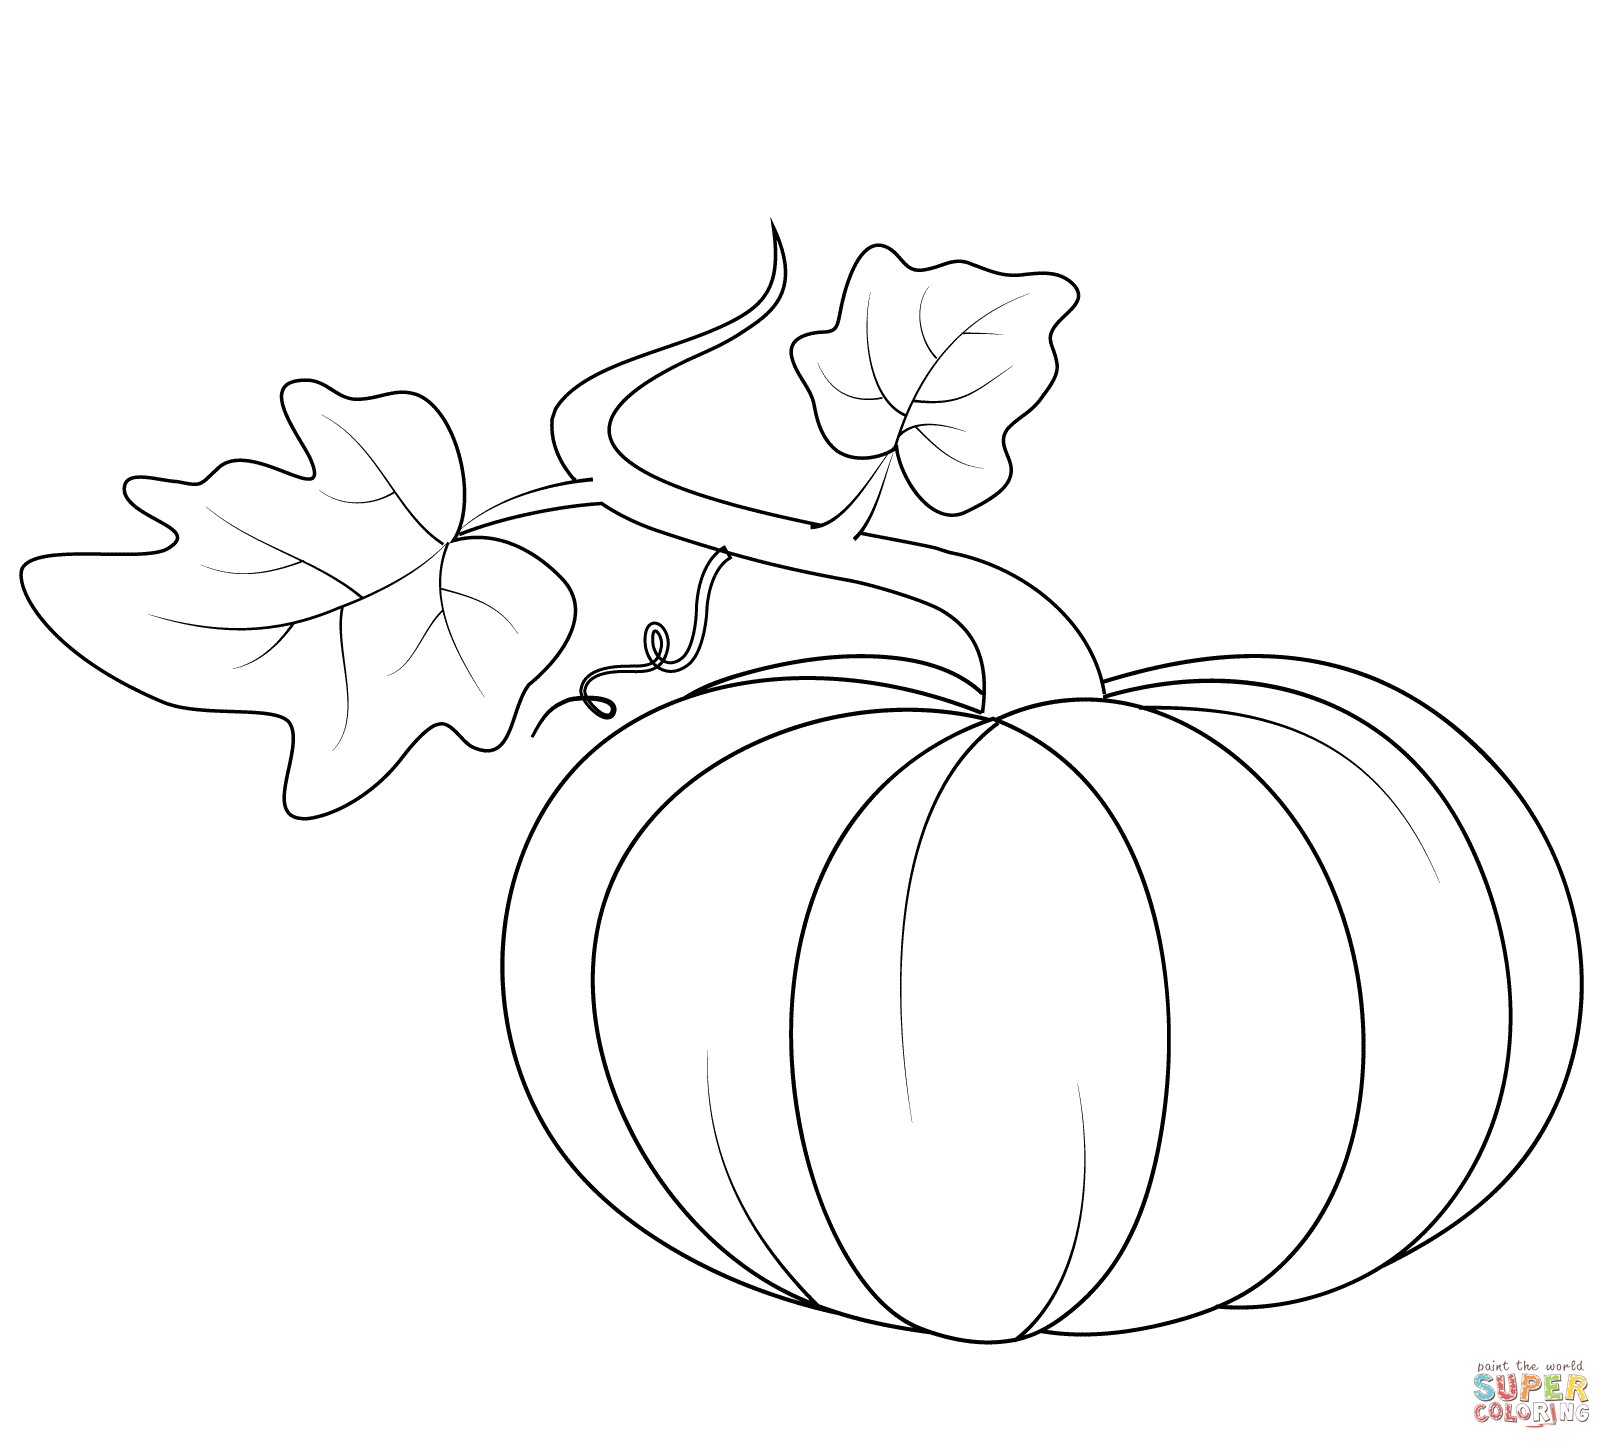 Drawn pumpkin color for kid Pages with pages coloring Leaves